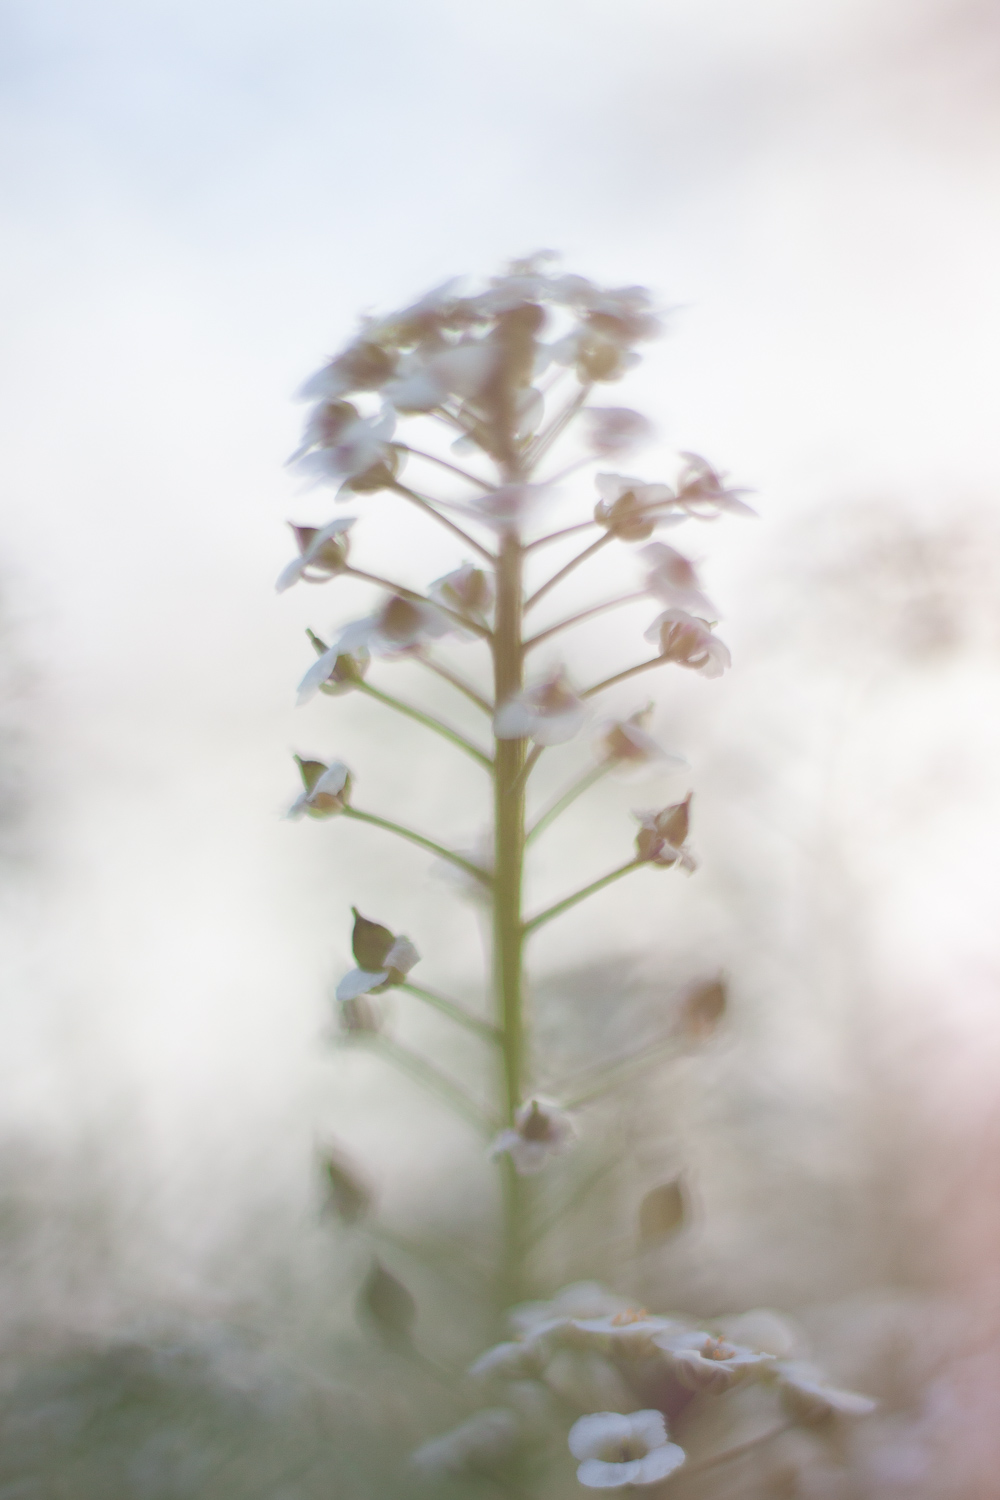 interesting flower shape - How to Use Backlight to Create Incredible Images